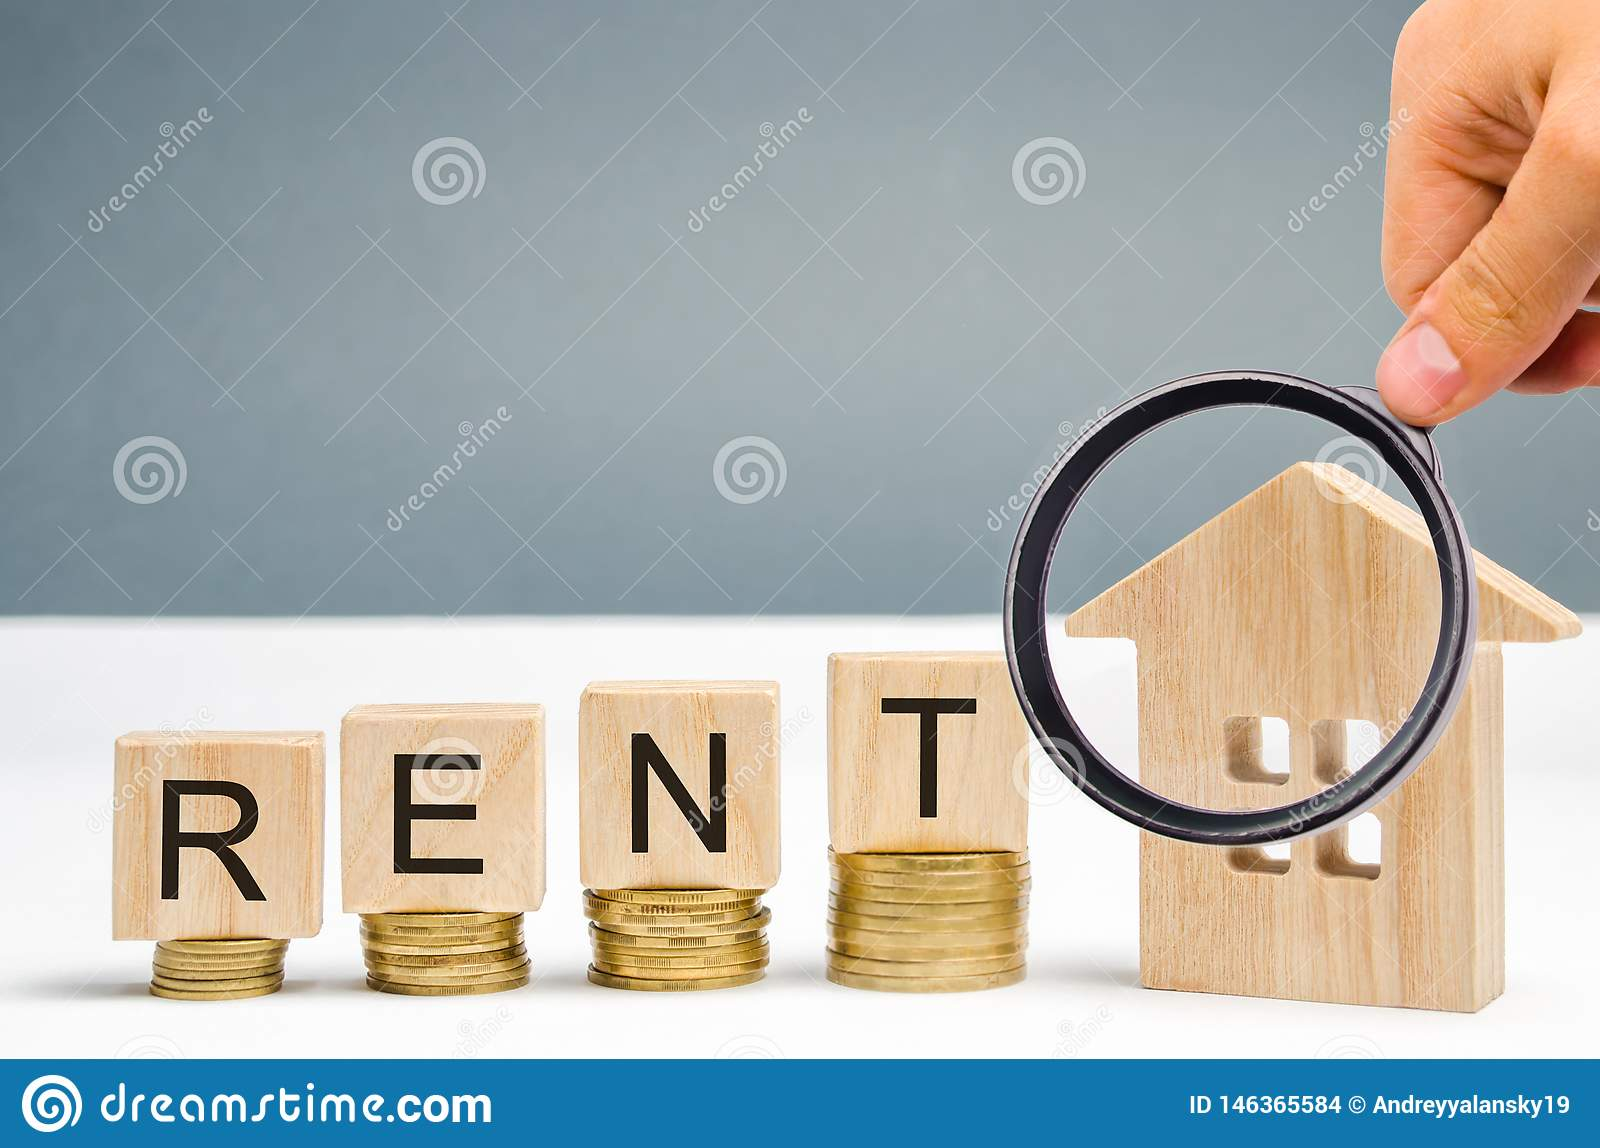 Magnifying glass, wooden blocks with the word Rent, coins and a miniature house. The concept of renting housing and real estate.